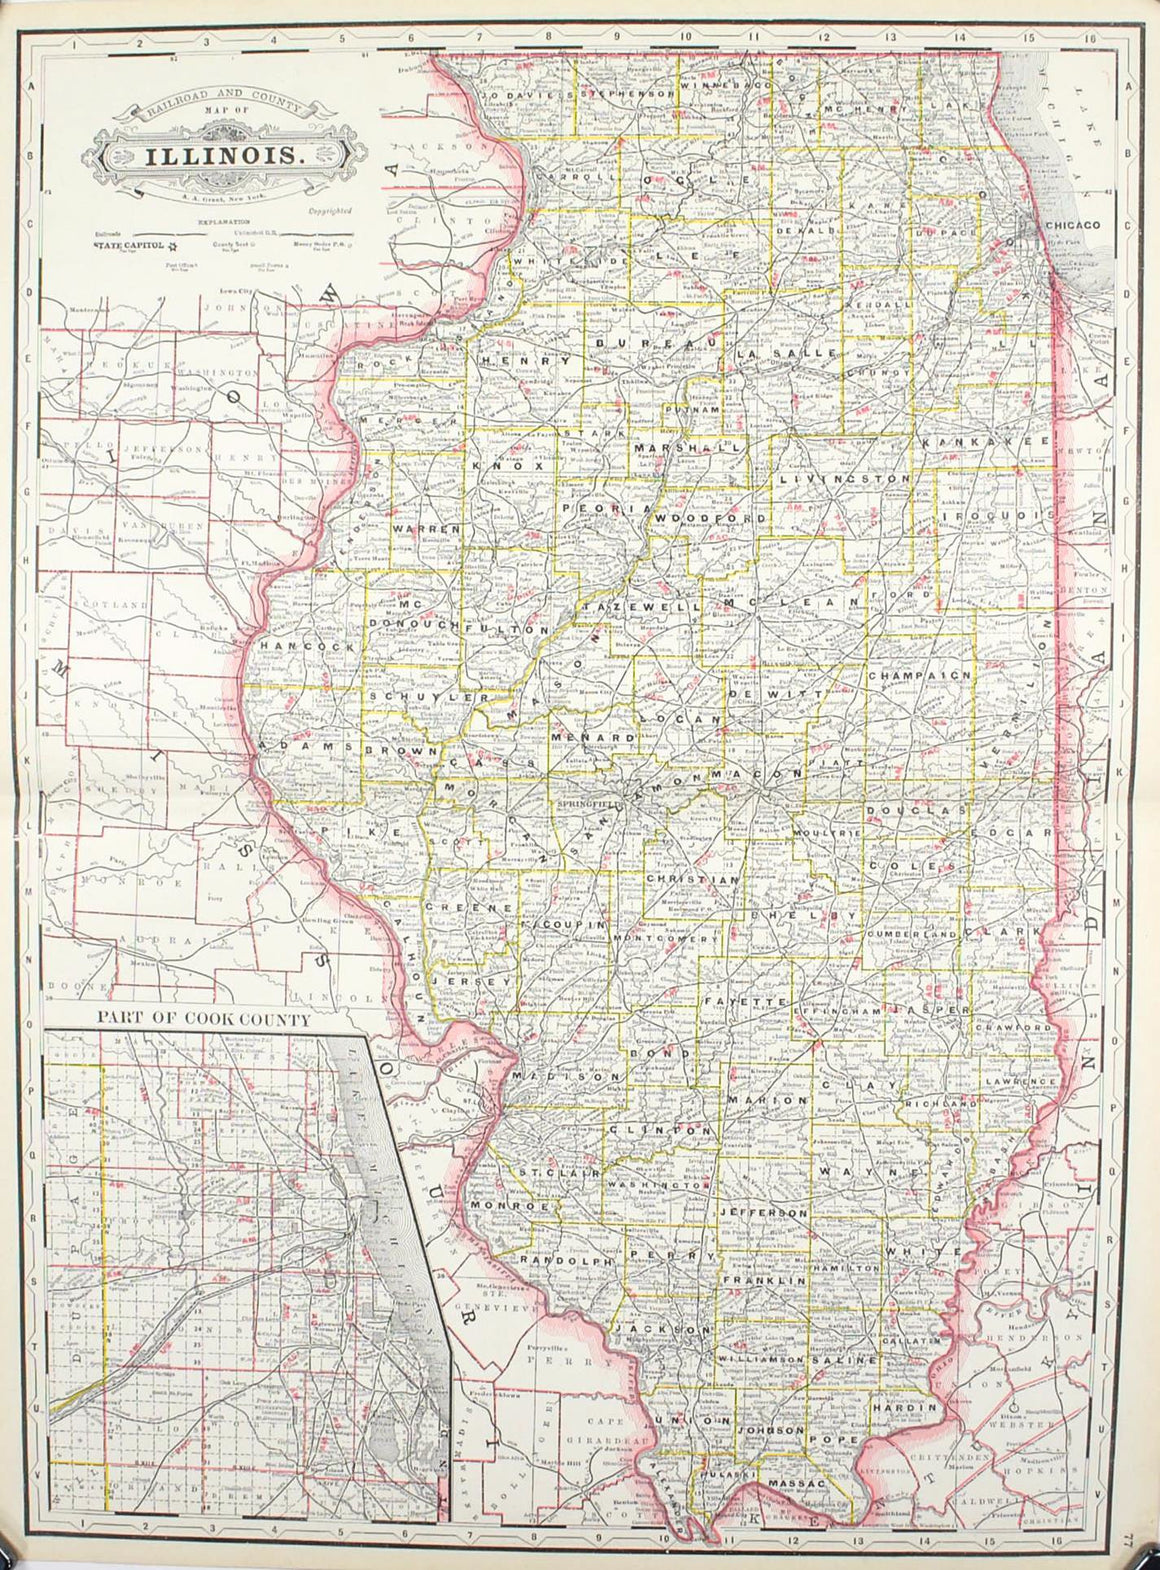 1887 Railroad and County Map of Illinois